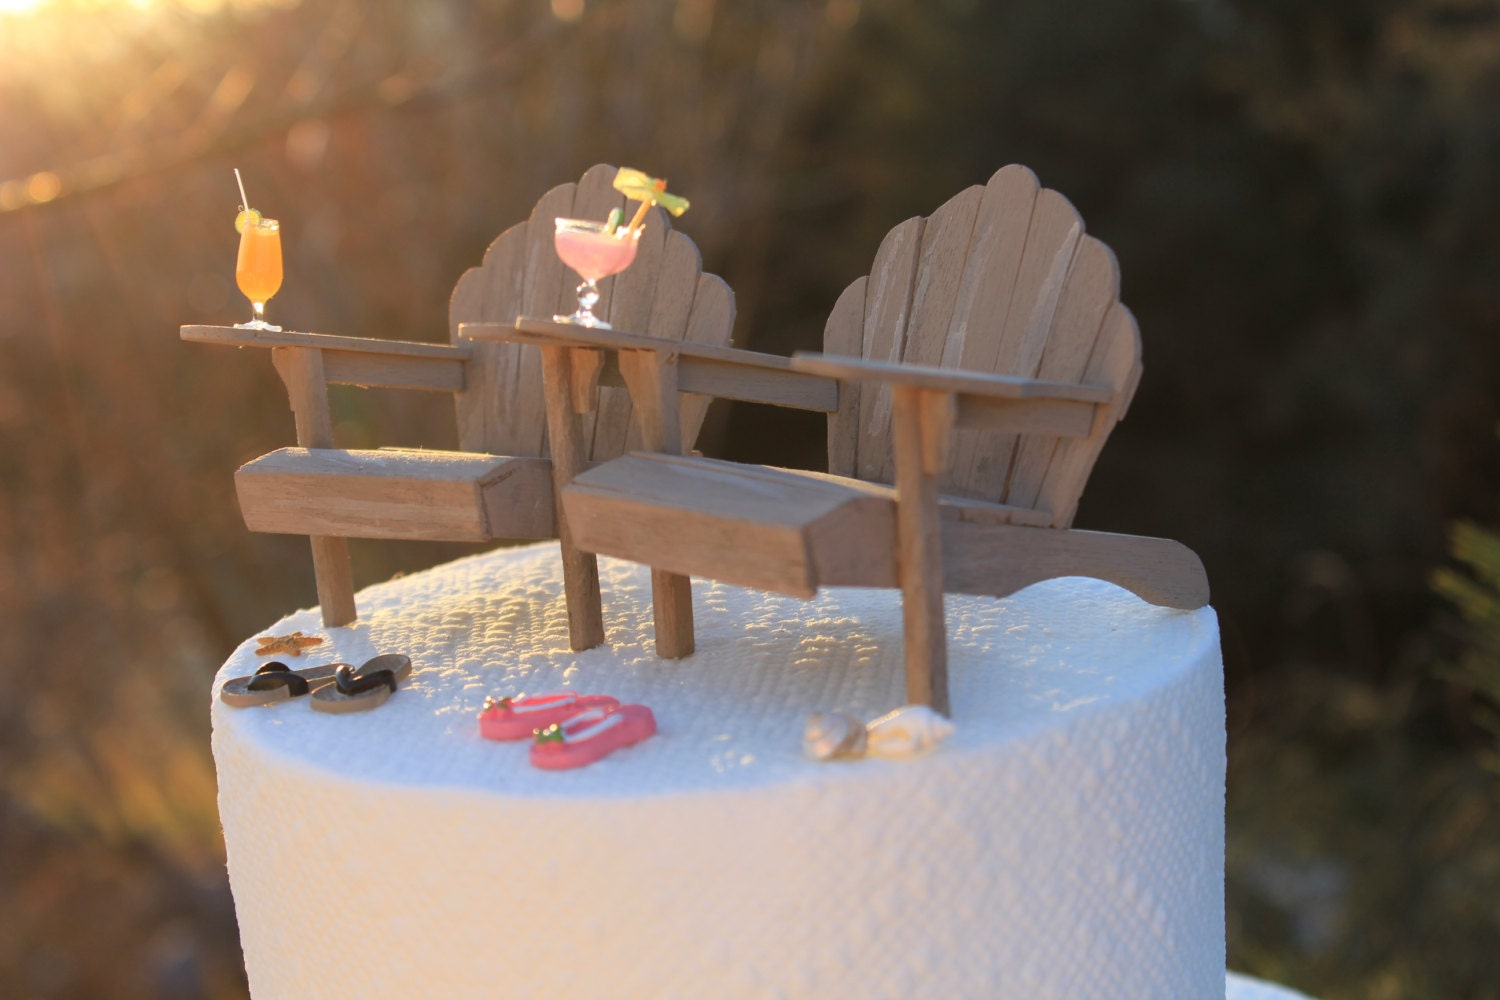 Beach Theme Wedding Cake Topper Adirondack Chairs amp Flip Flops